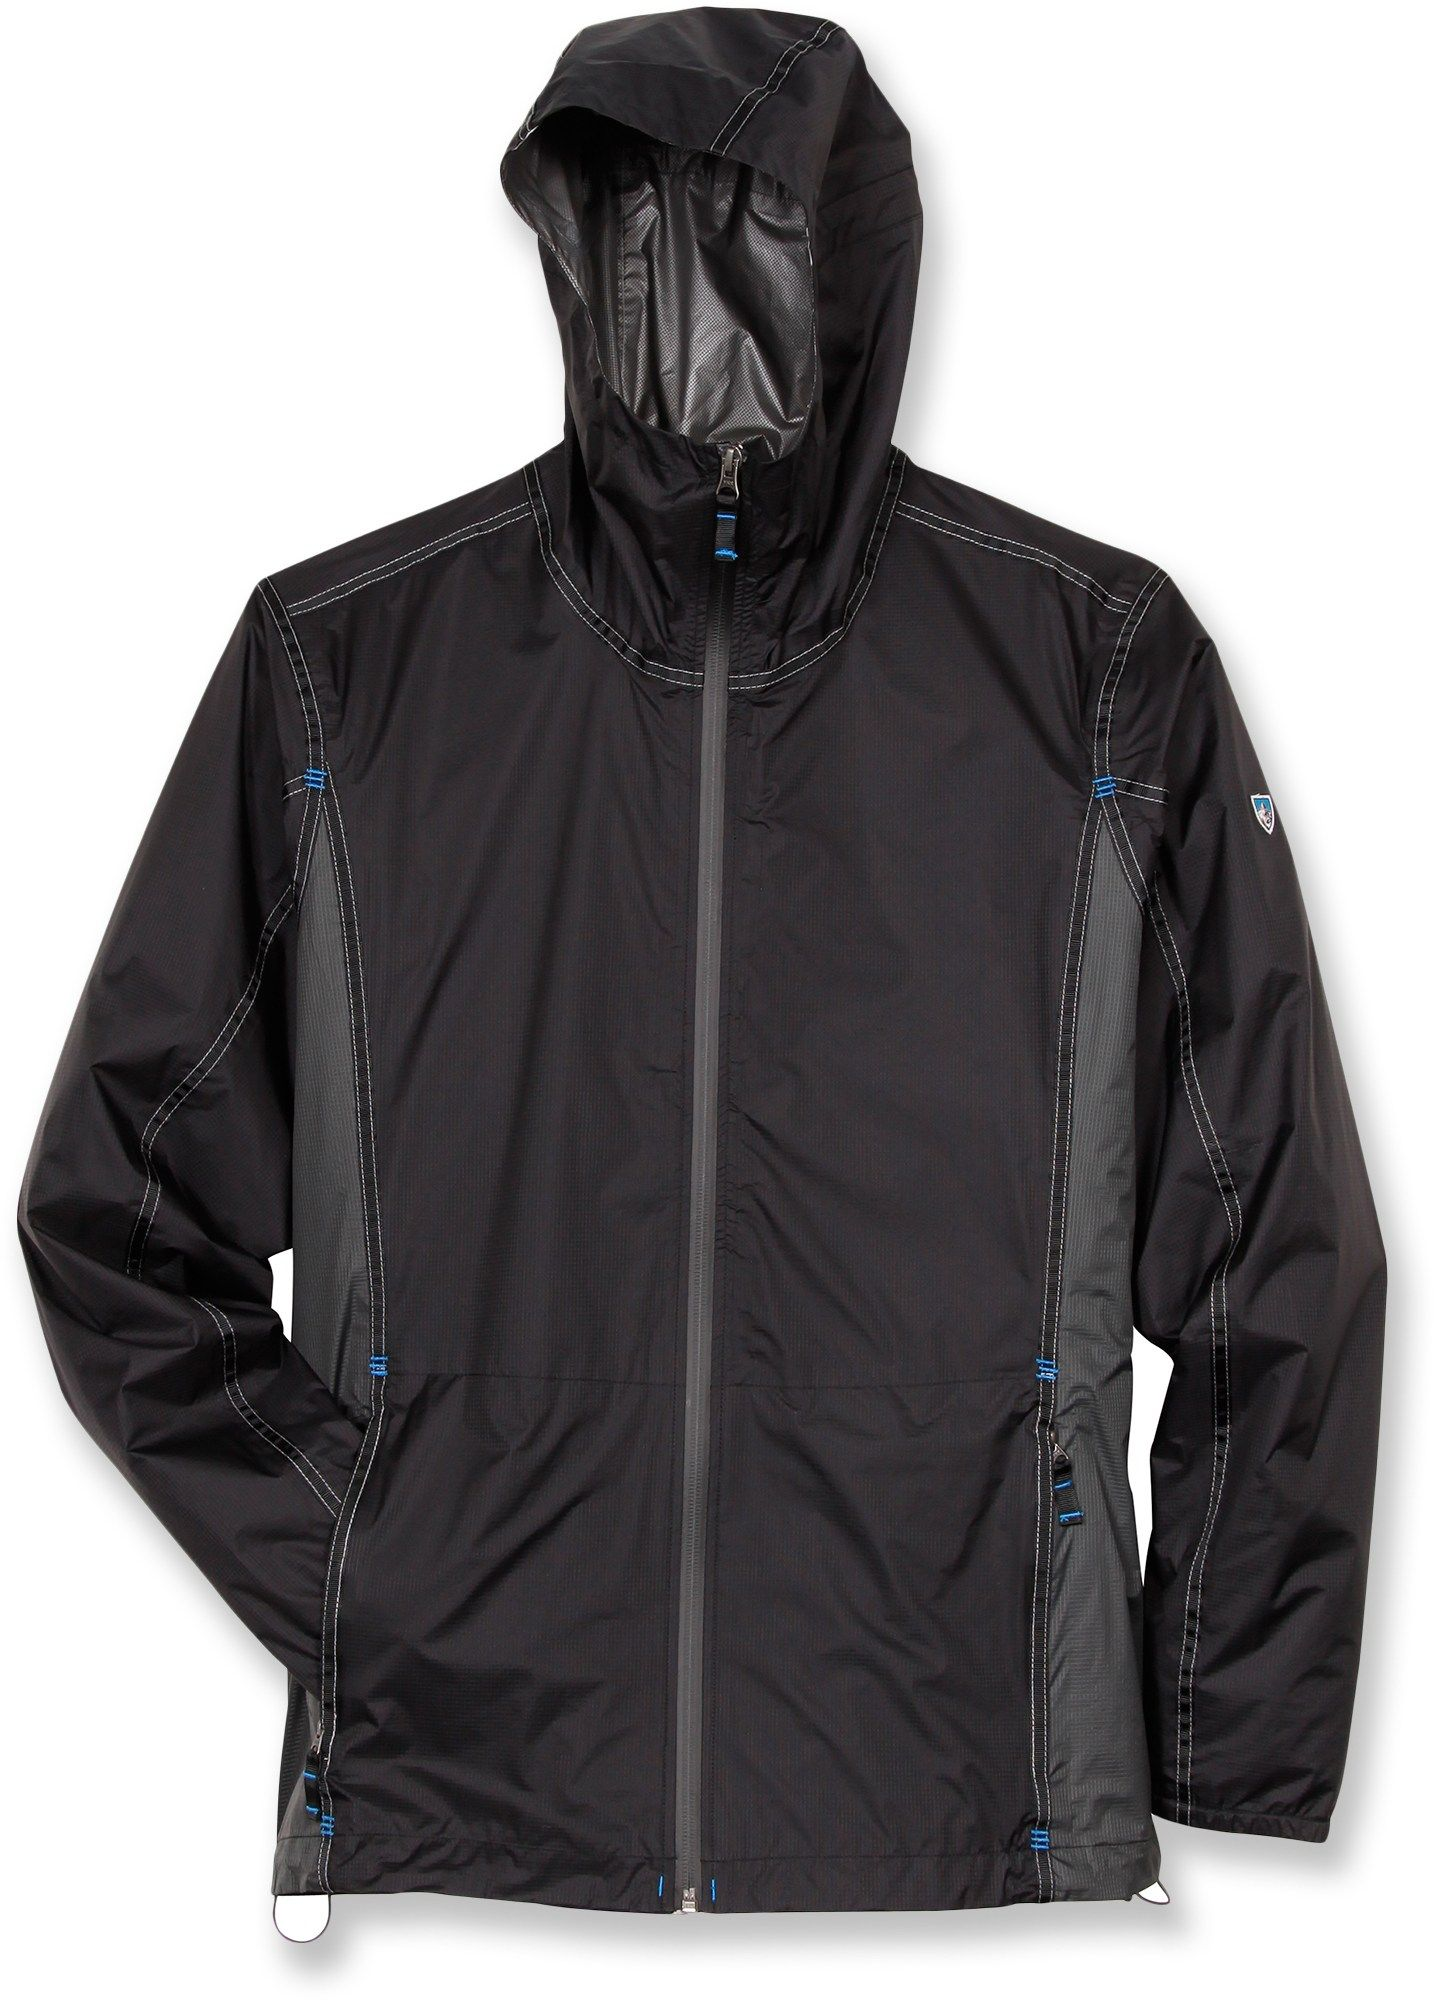 The Kuhl Parachute Jak - lightweight jacket offers complete ...